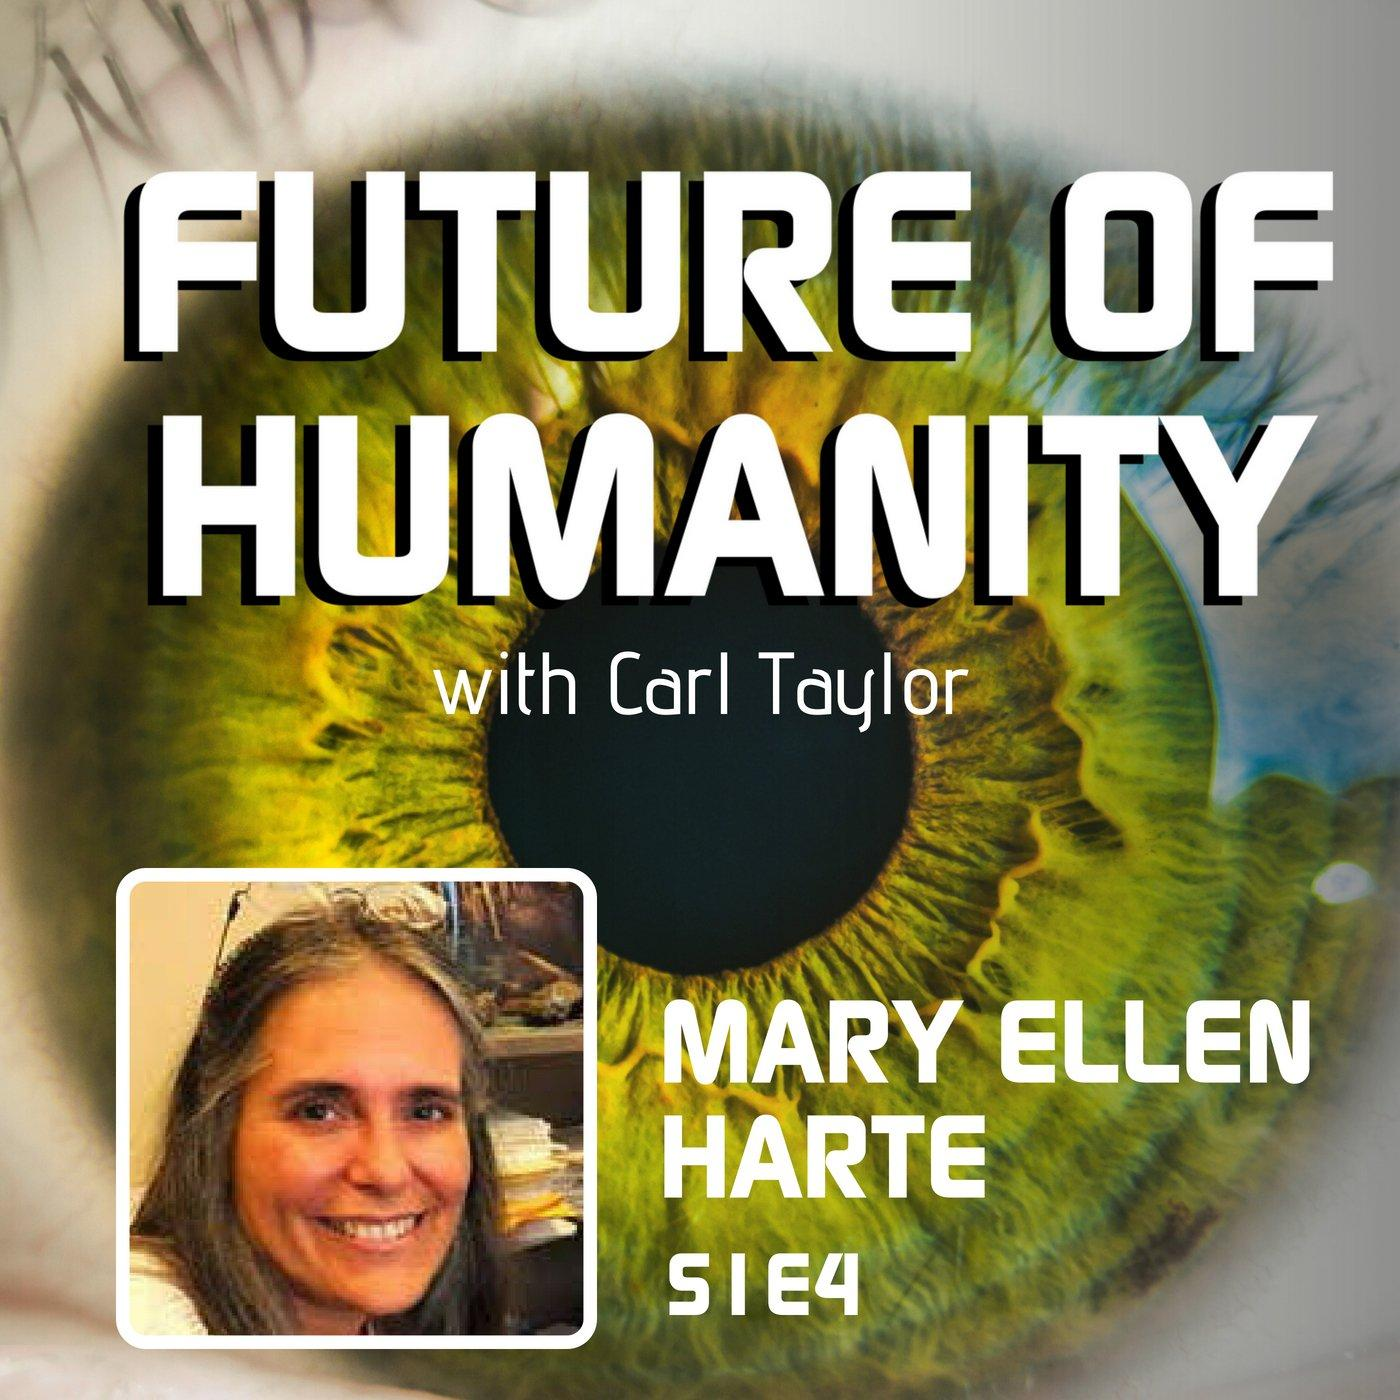 Overpopulation, Climate Change, and Unintended Pregnancies with Dr. Mel (Mary Ellen) Harte - Episode 4